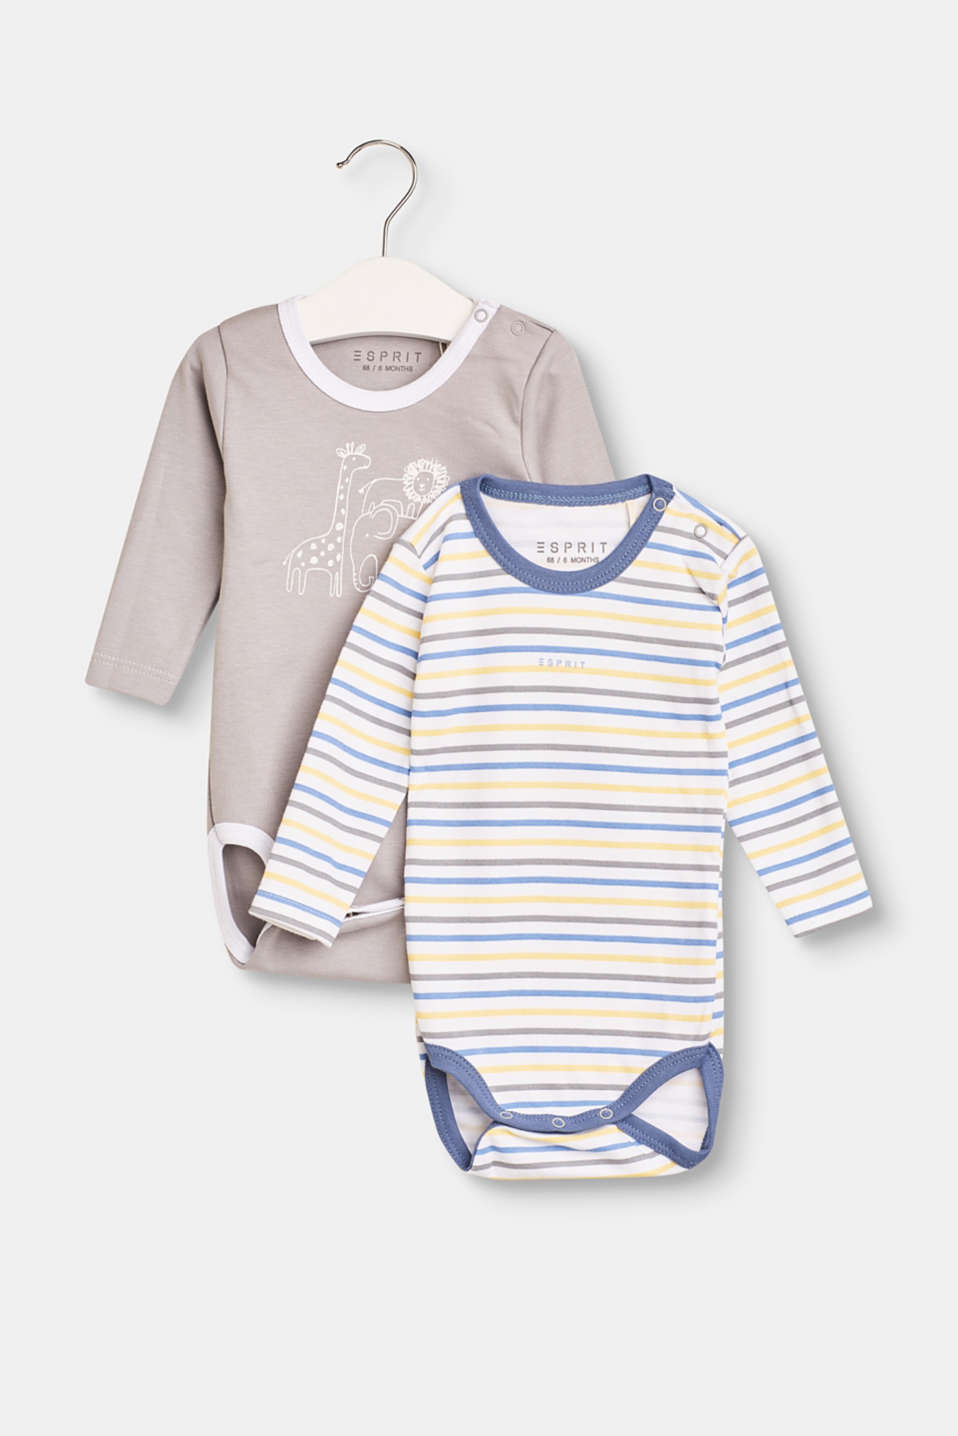 Esprit - 2-pack of bodies with organic cotton